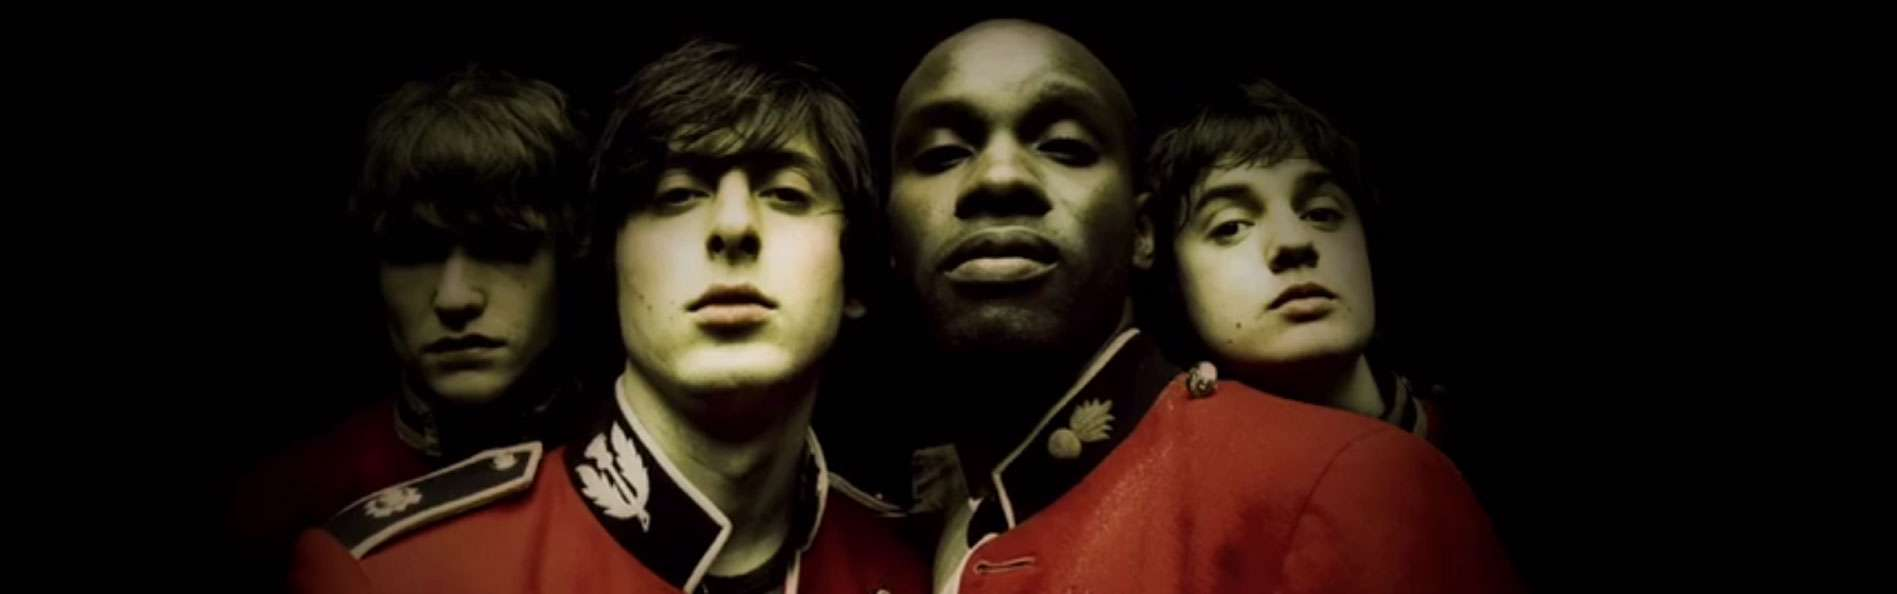 Libertines Foto: Facebook / The Libertines